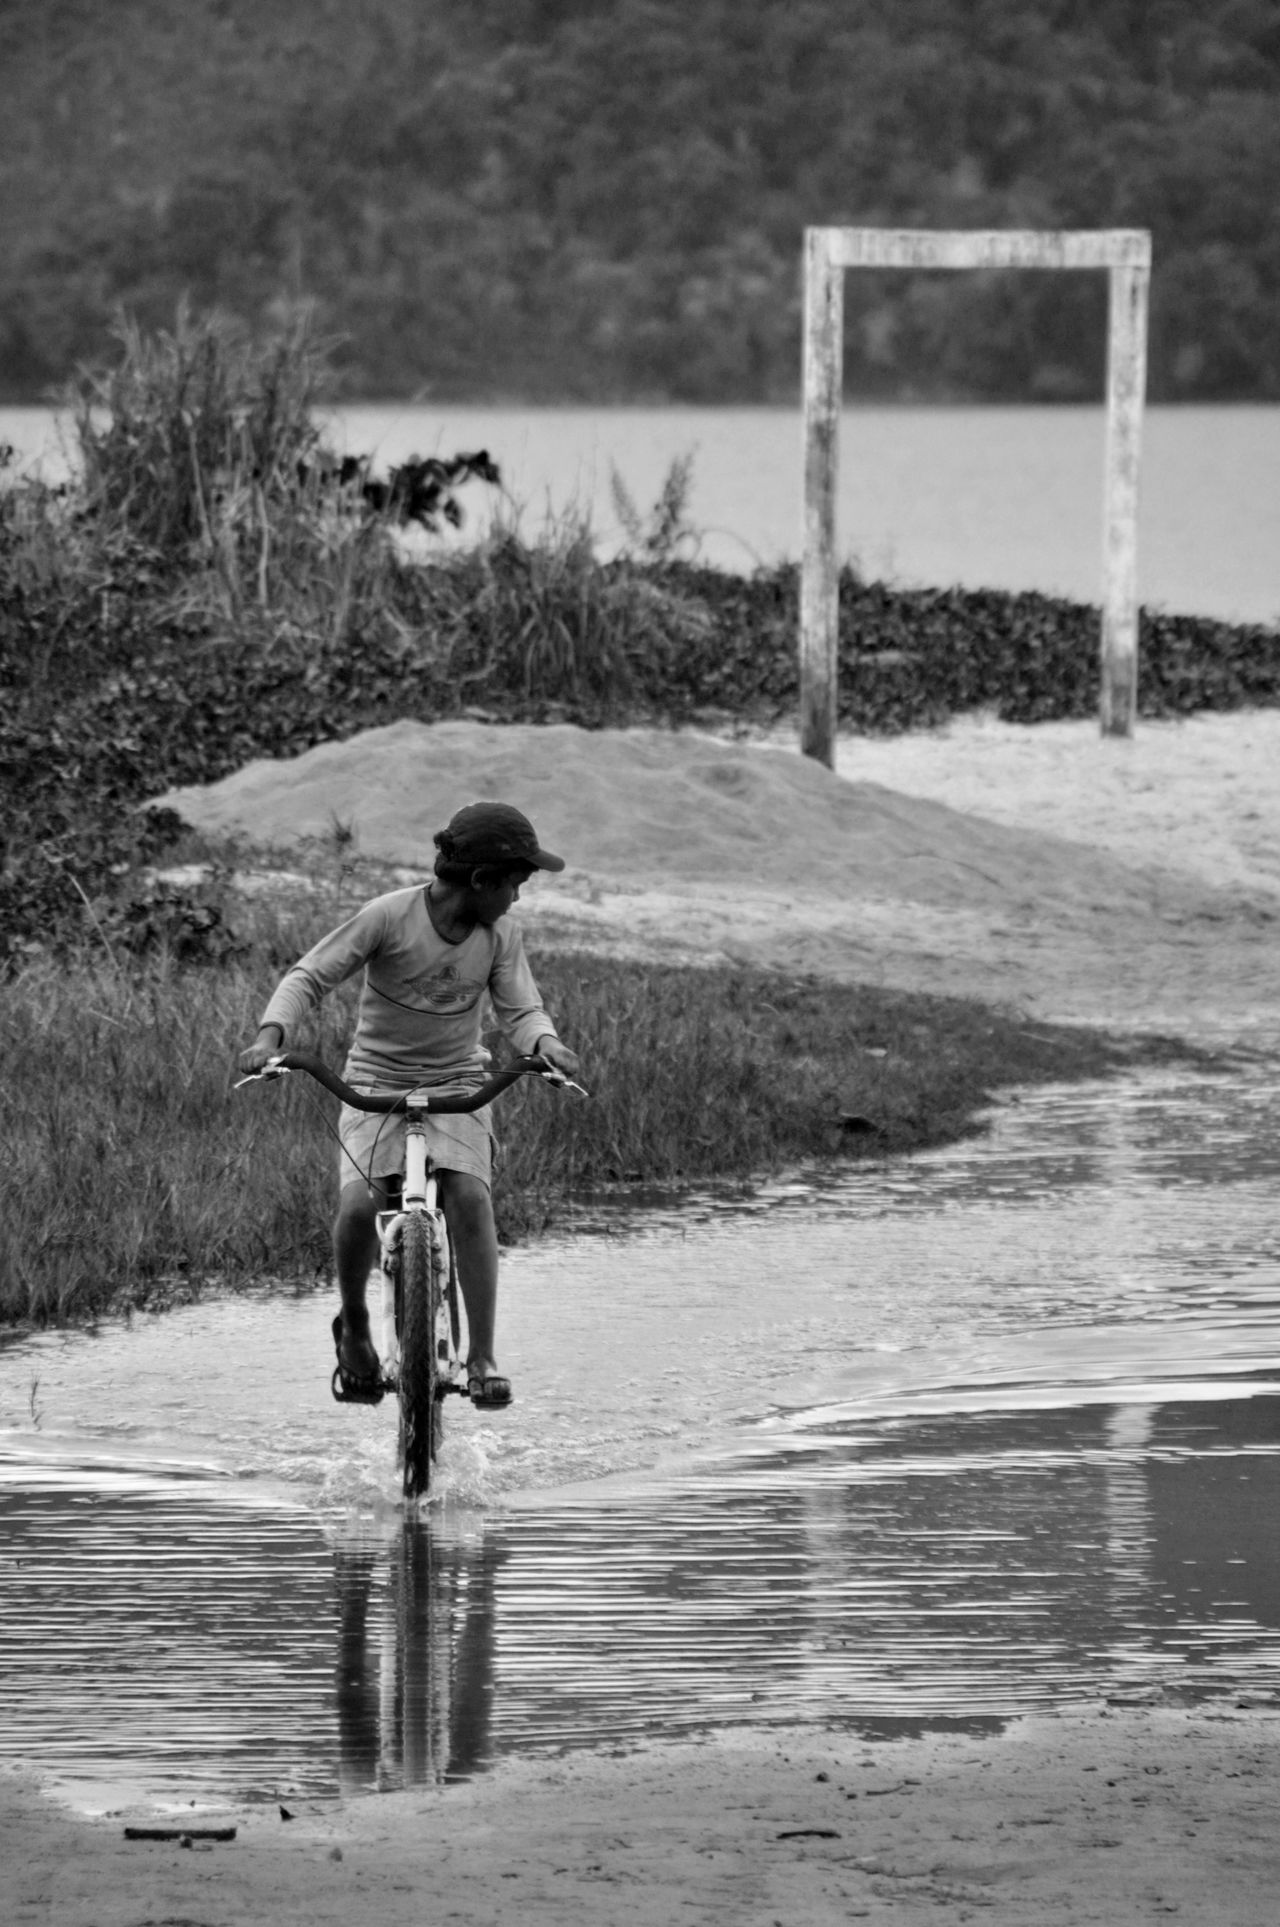 Bike Boy Brazil Natural Beauty Day One Person Outdoors Sand Water